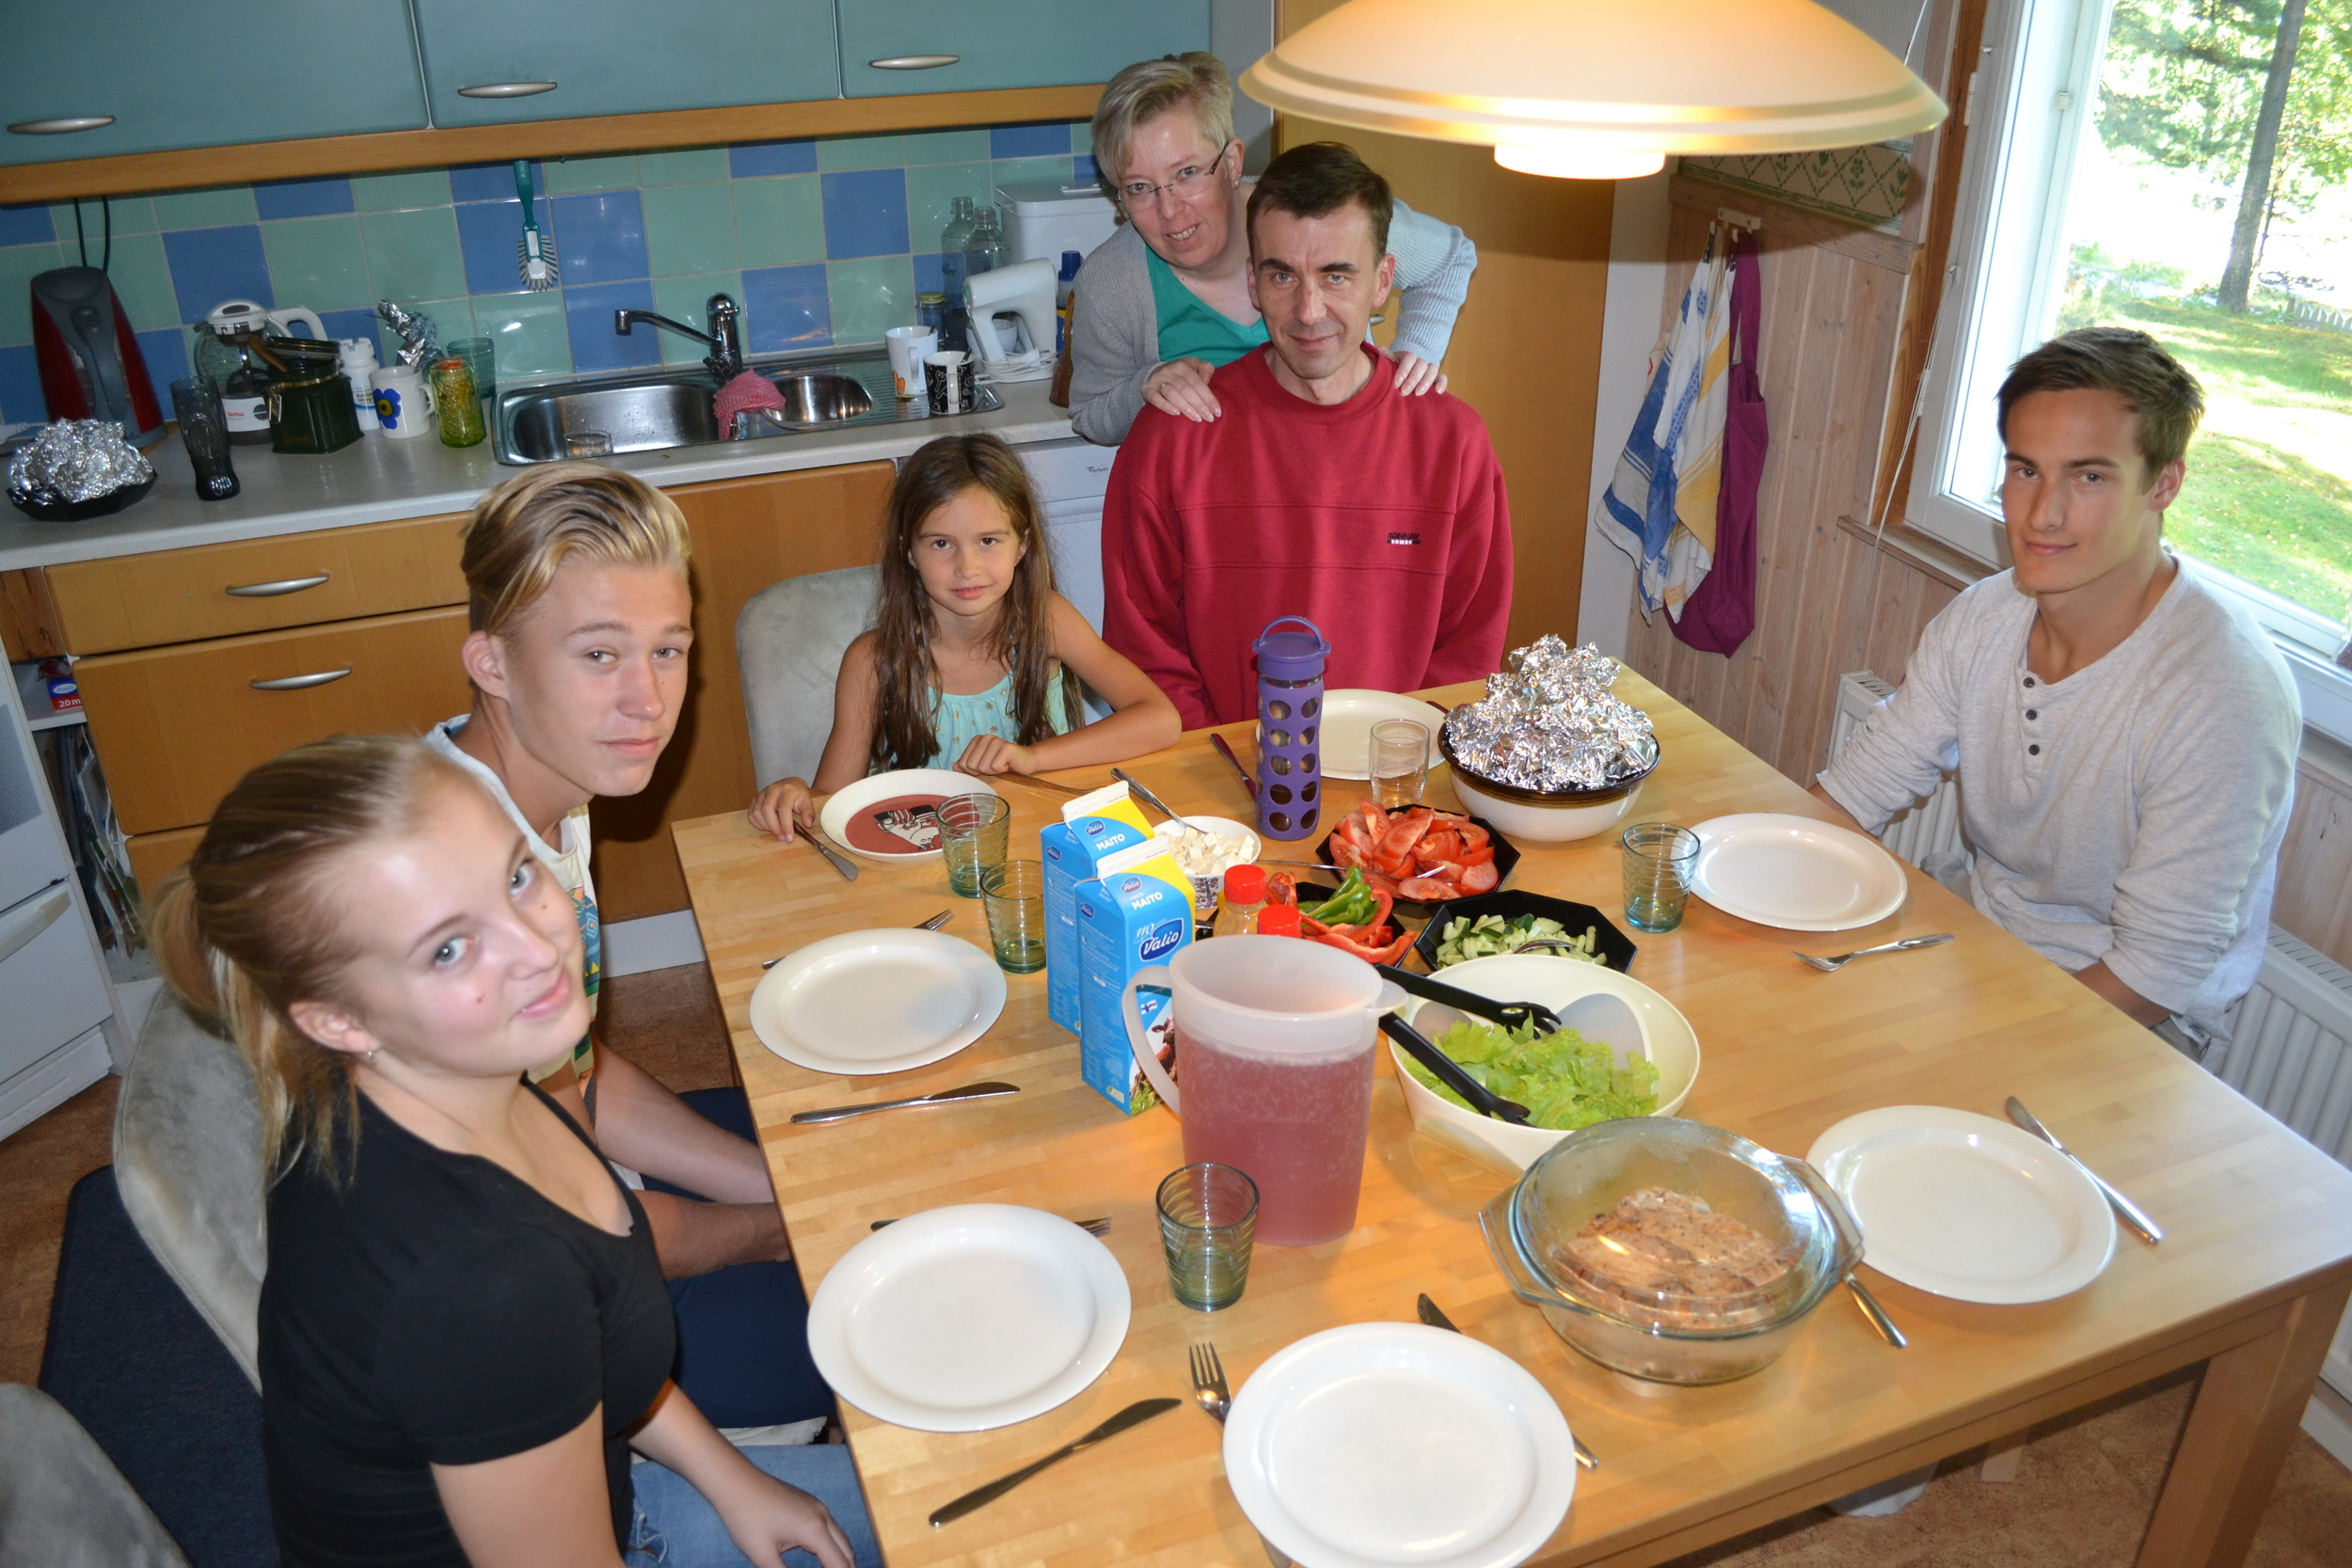 Great family meals